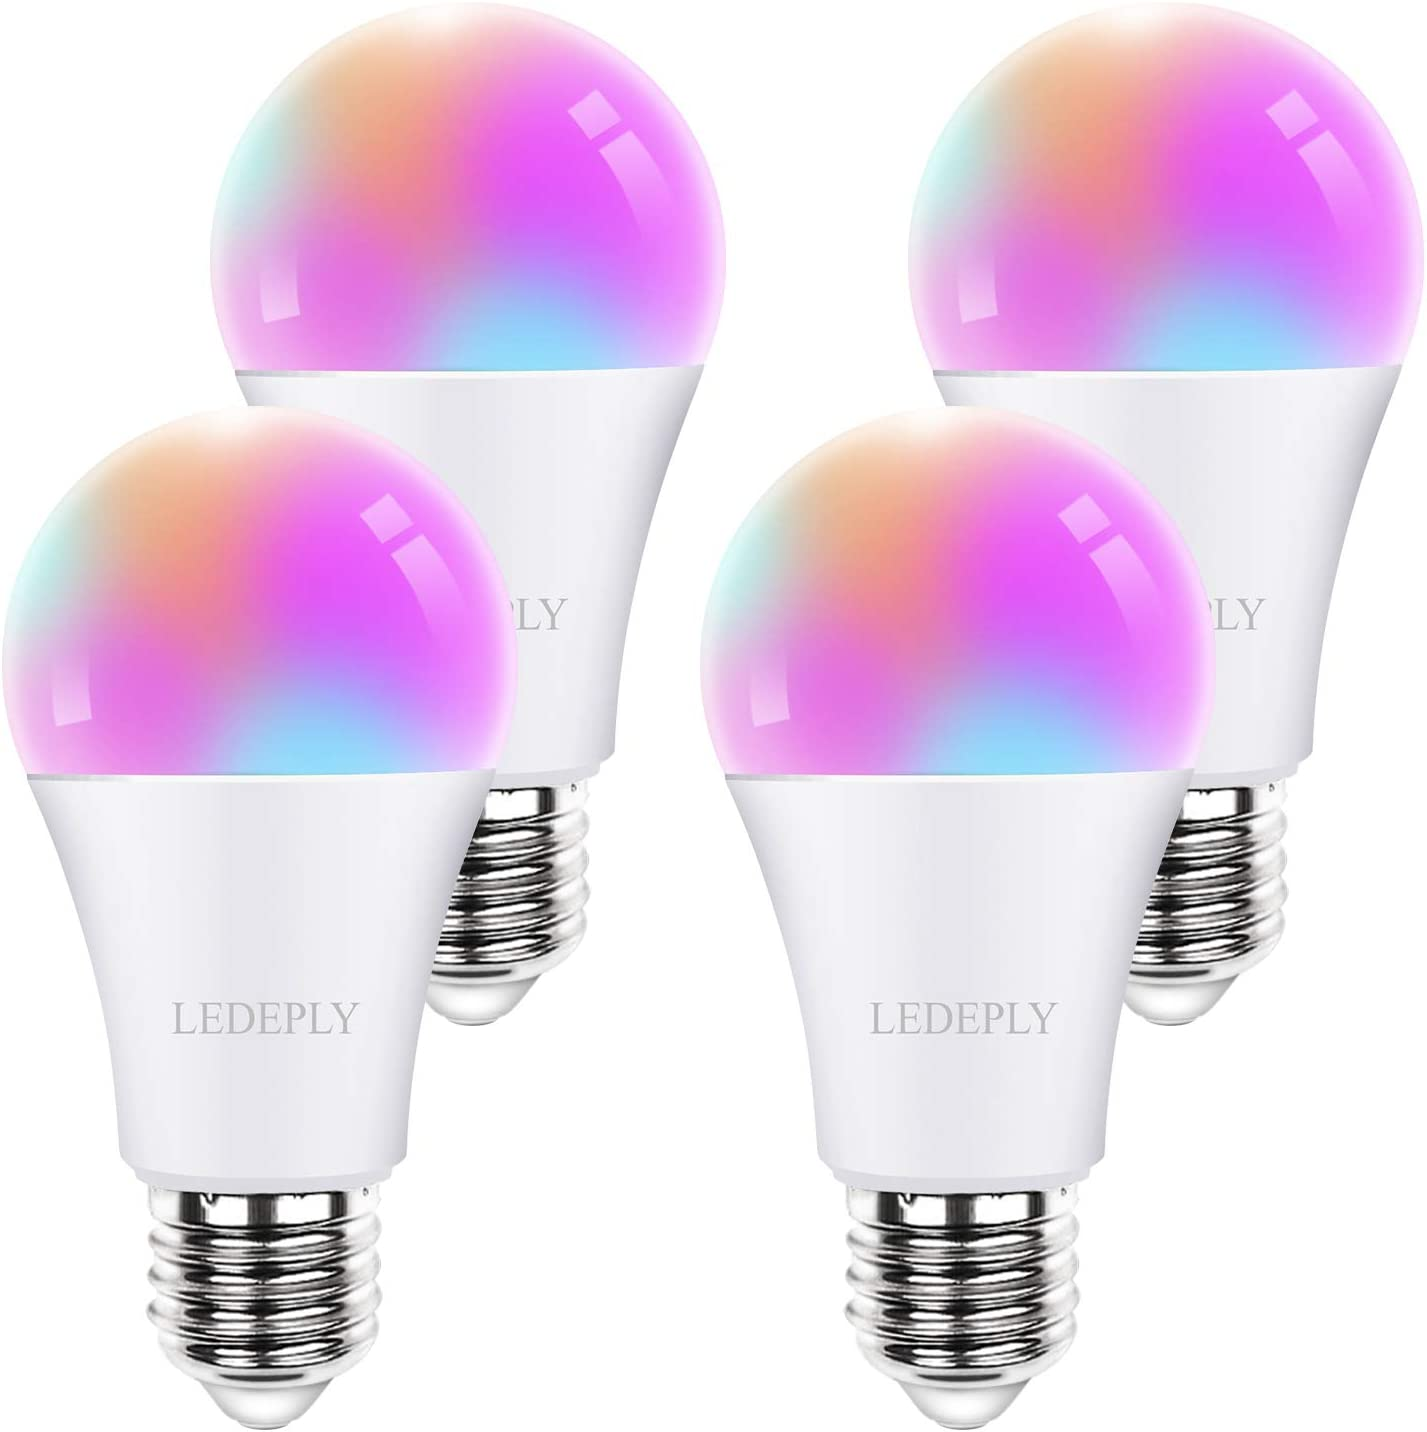 Smart Light Bulb, Compatible with Alexa, Google Home & SmartThings, LED RGB Color Changing WiFi Smart Bulb, A19 10W=60W, Tunable White 2700K-6500K, No Hub Required, 4 Pack, LEDEPLY